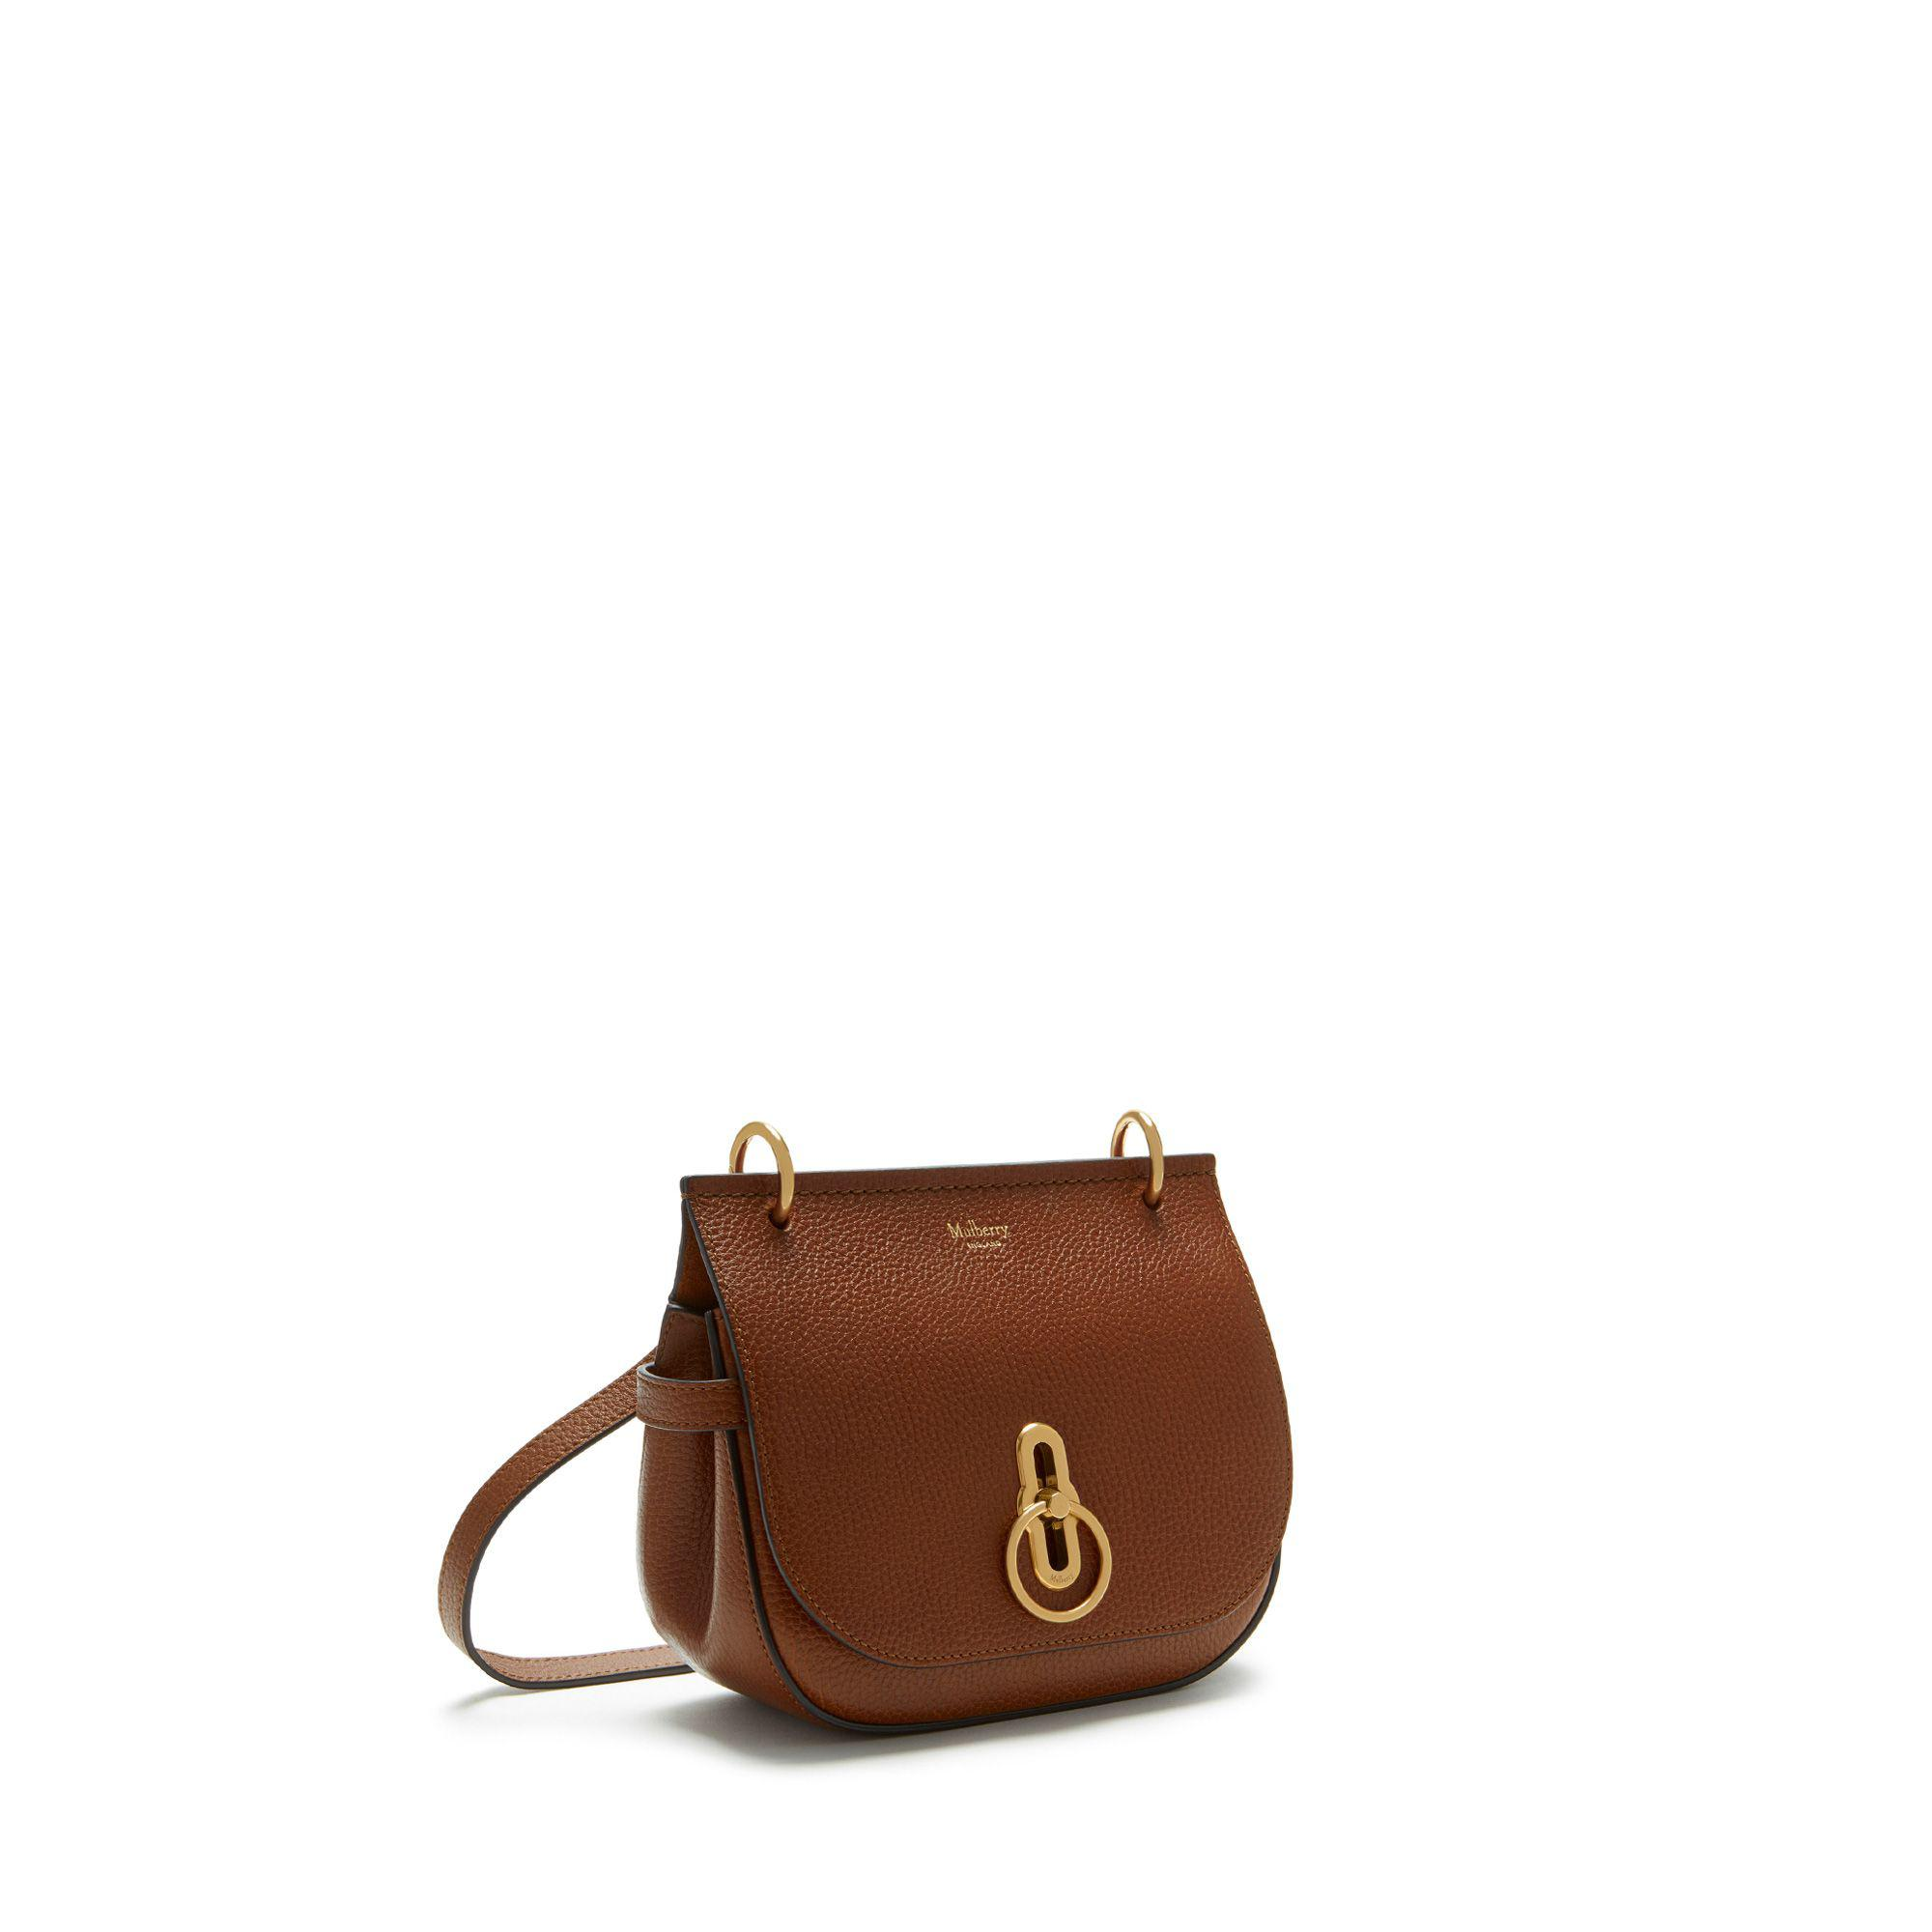 810bf32deb0e Mulberry - Brown Small Amberley Satchel In Oak Natural Grain Leather -  Lyst. View fullscreen